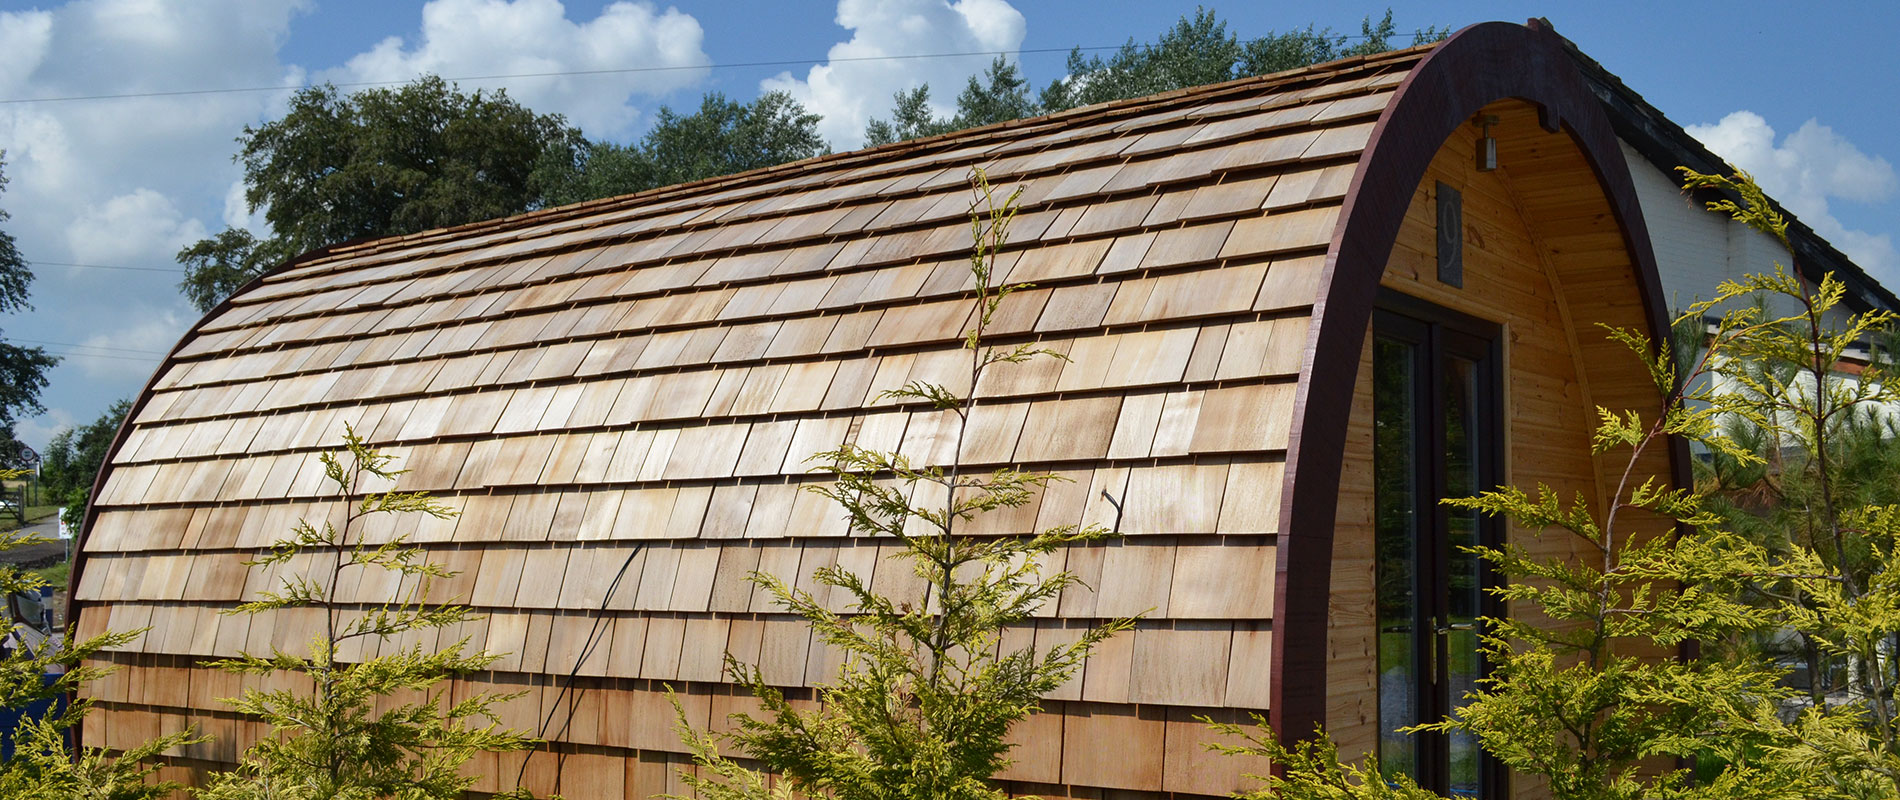 Western Red Cedar Shingles Are the Natural Choice for Glamping Pods